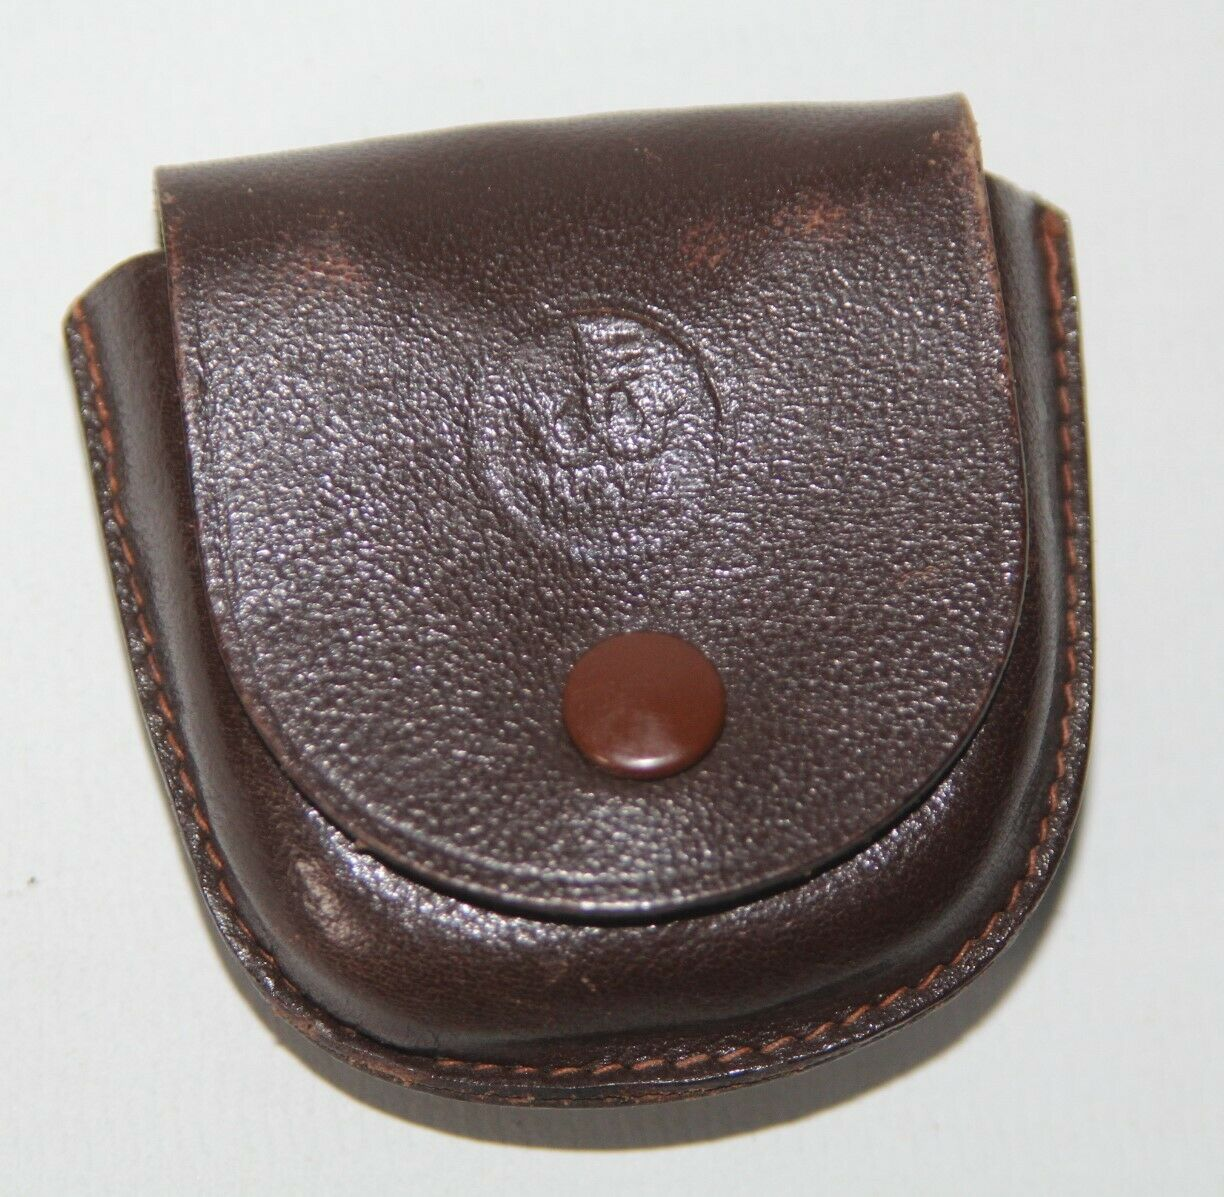 Wata, Germany - Vintage Brown Leather Strap-Mount Accessory Case - vgc